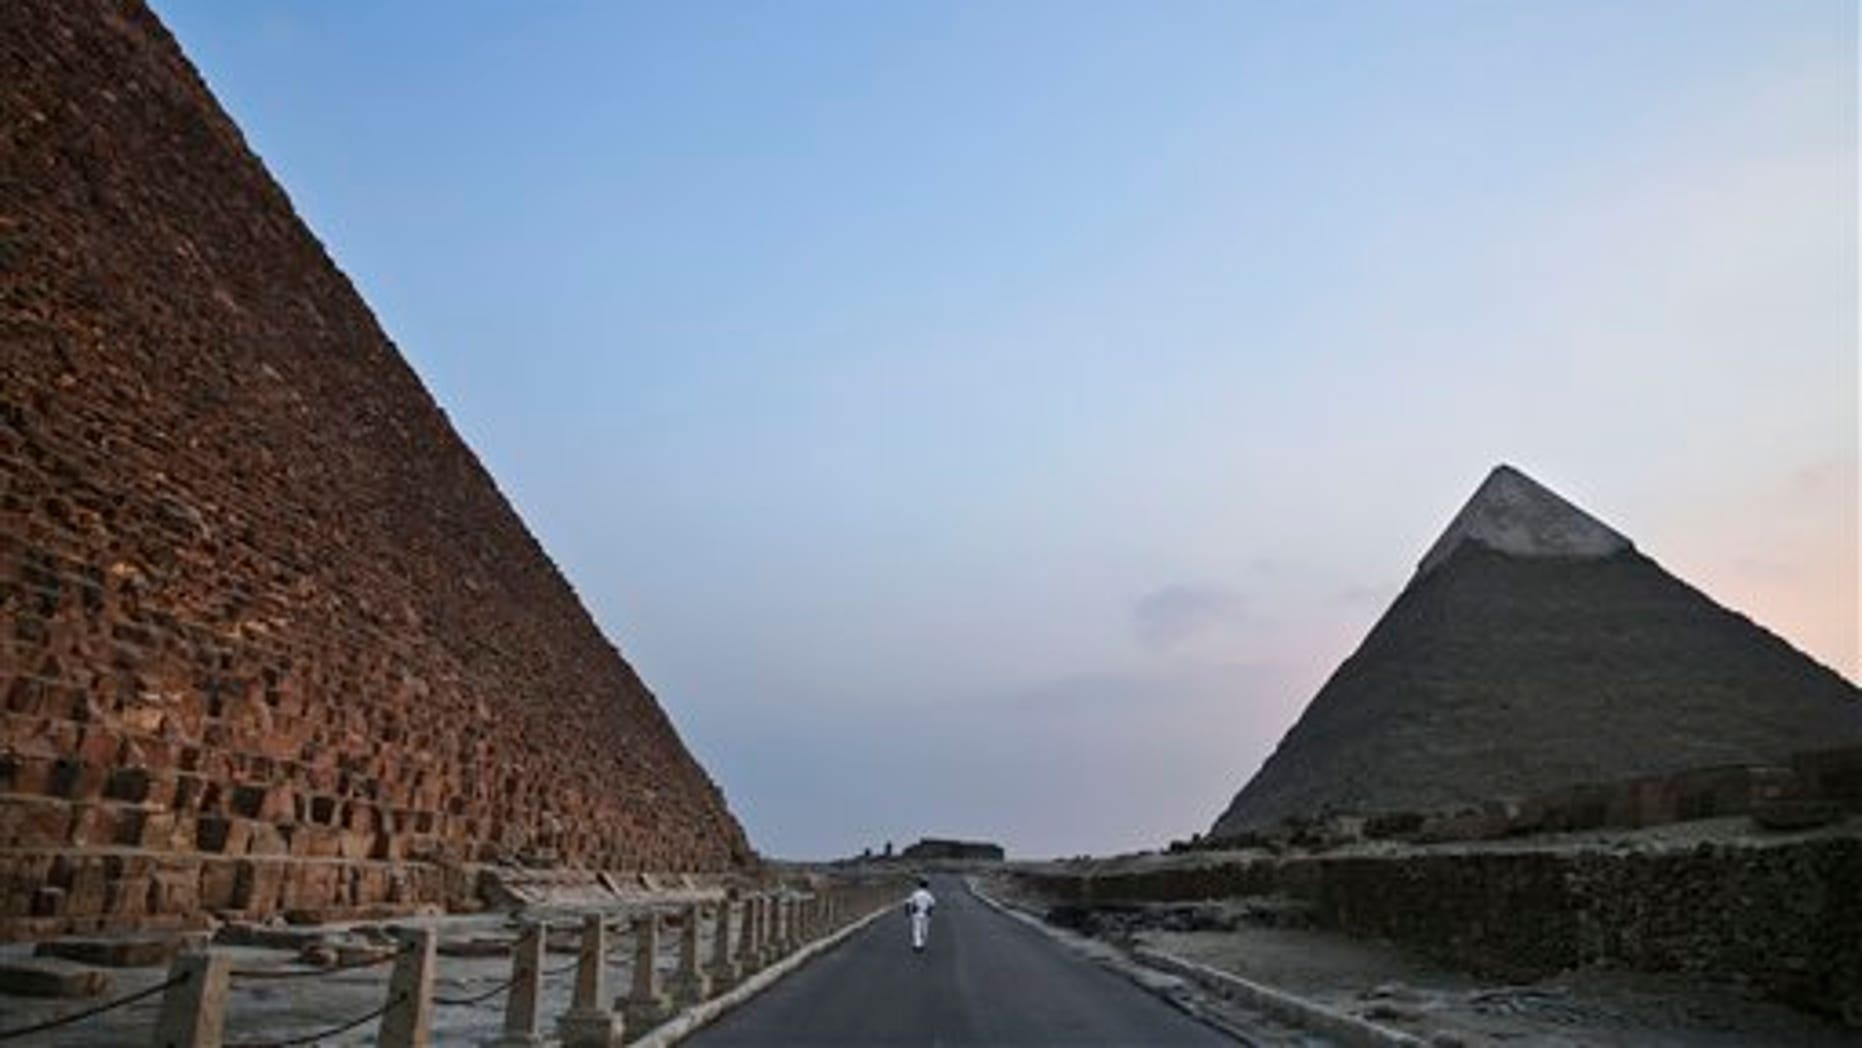 Gunmen on a motorcycle opened fire on a church near the Giza pyramids, state media report.